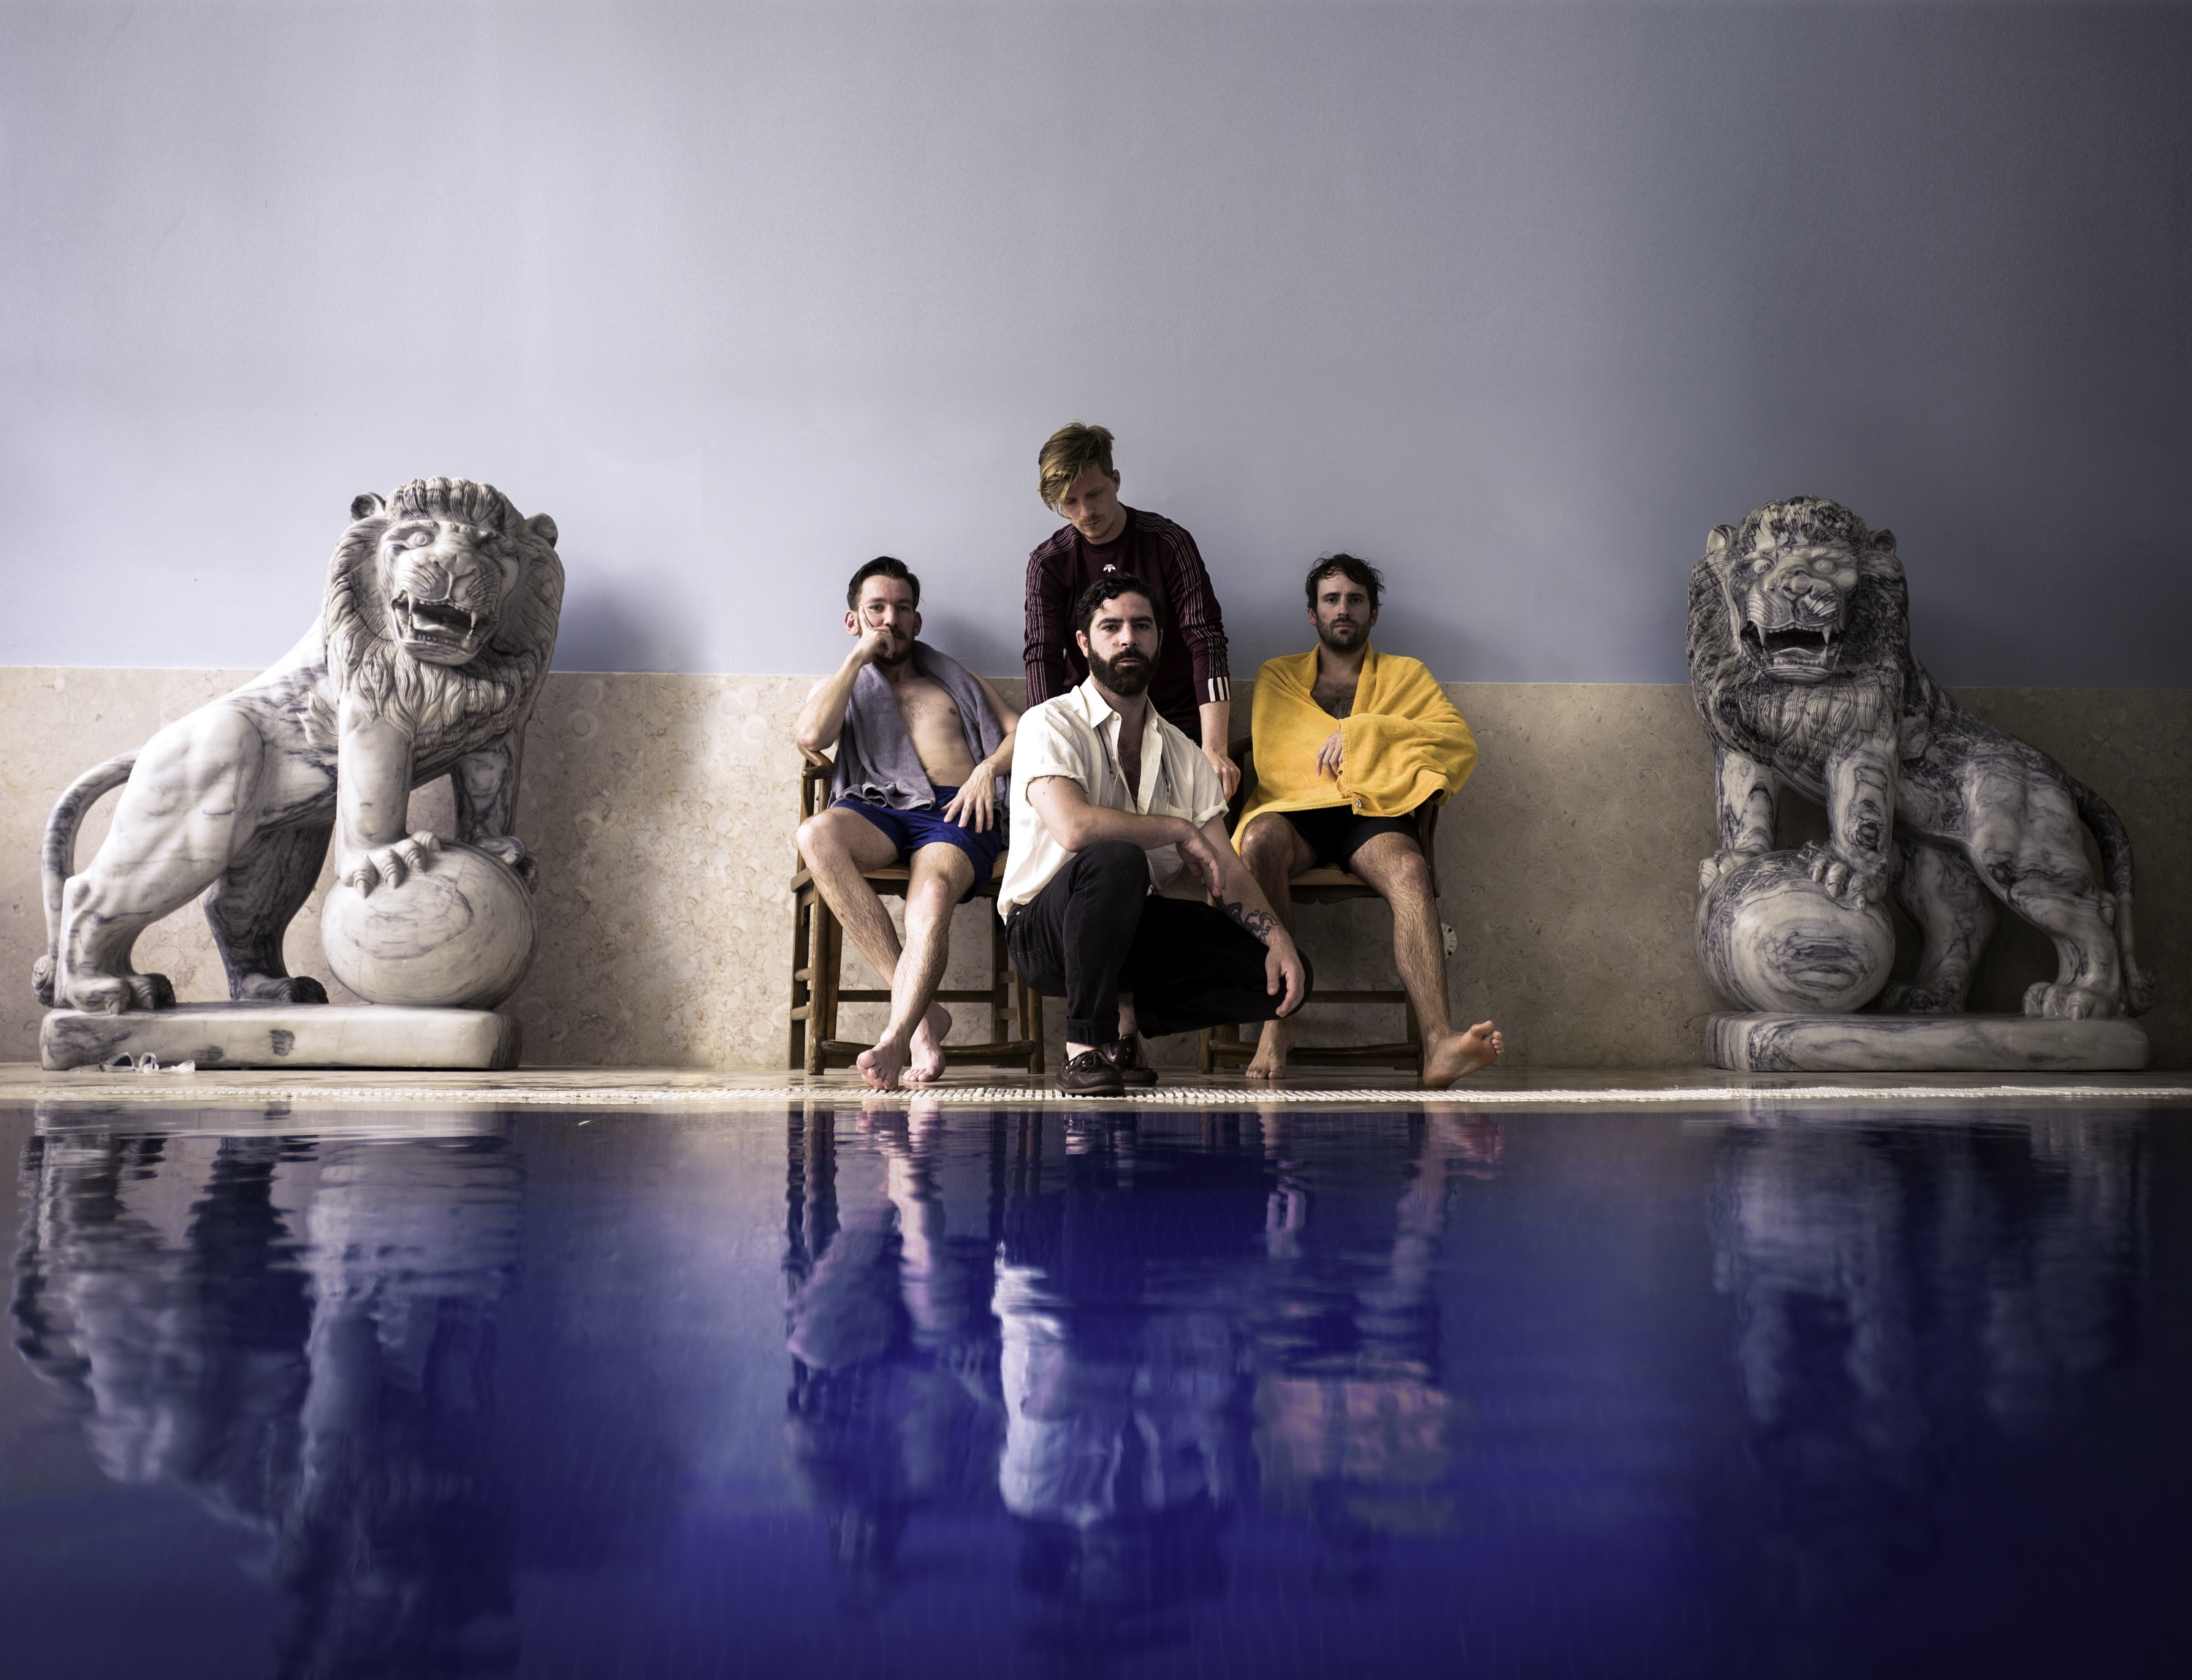 Foals the band sat behind a pool with statues of lions either side